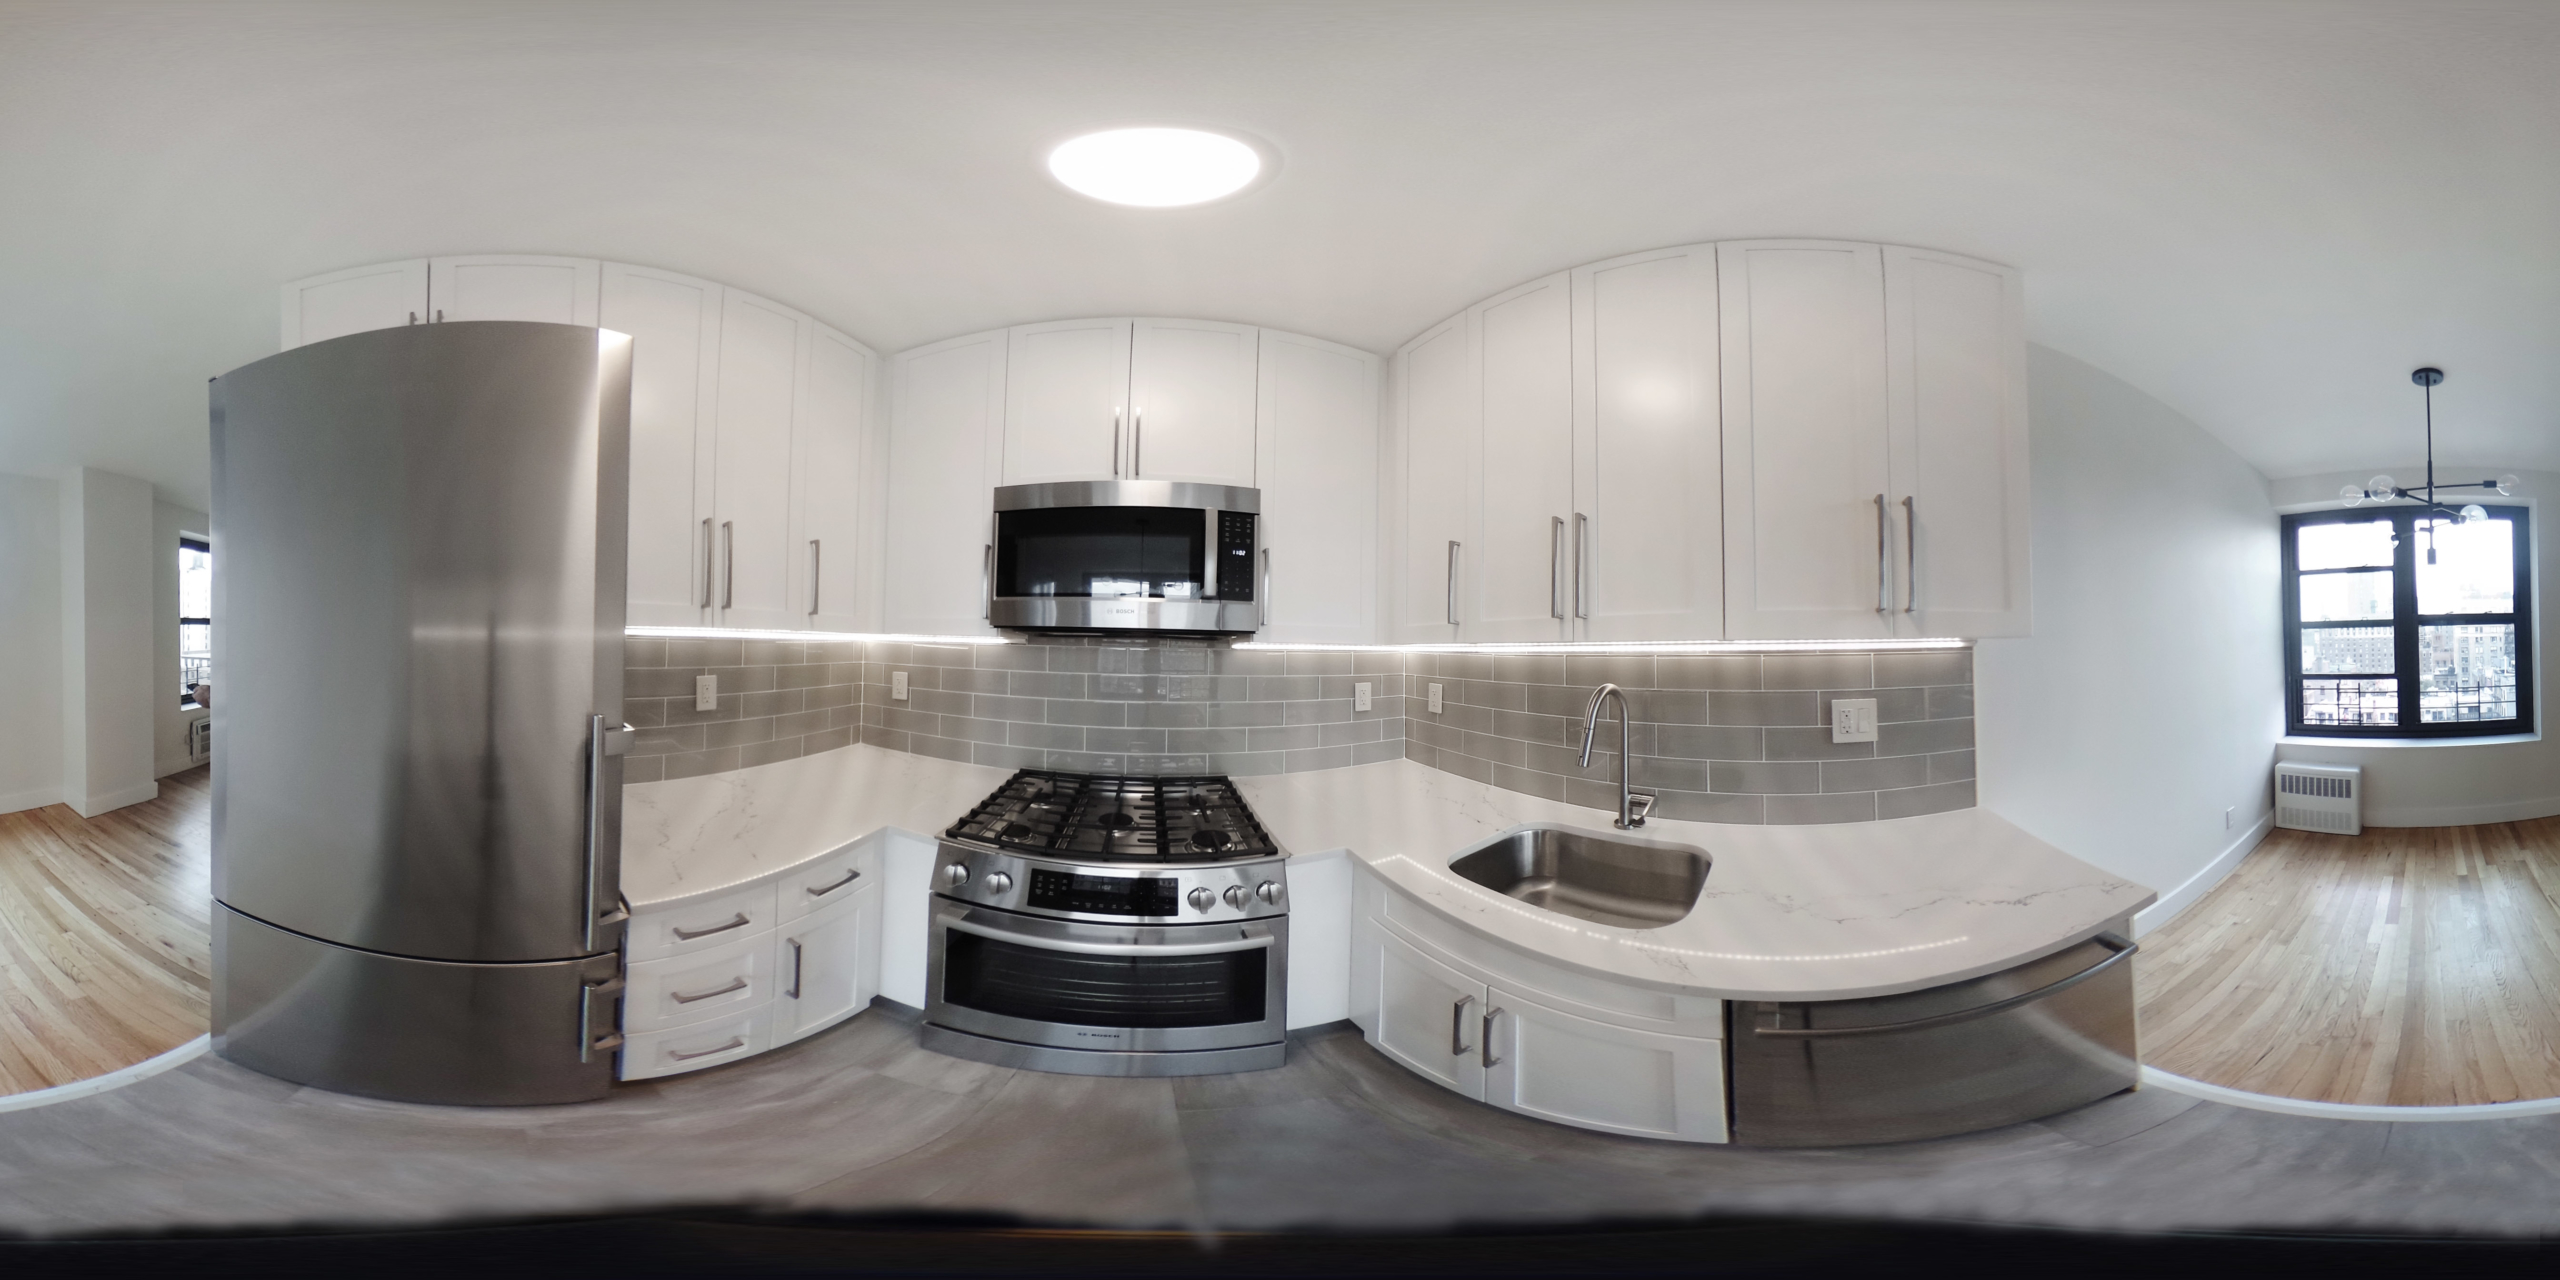 Why Do You Choose NYC General Contractors?